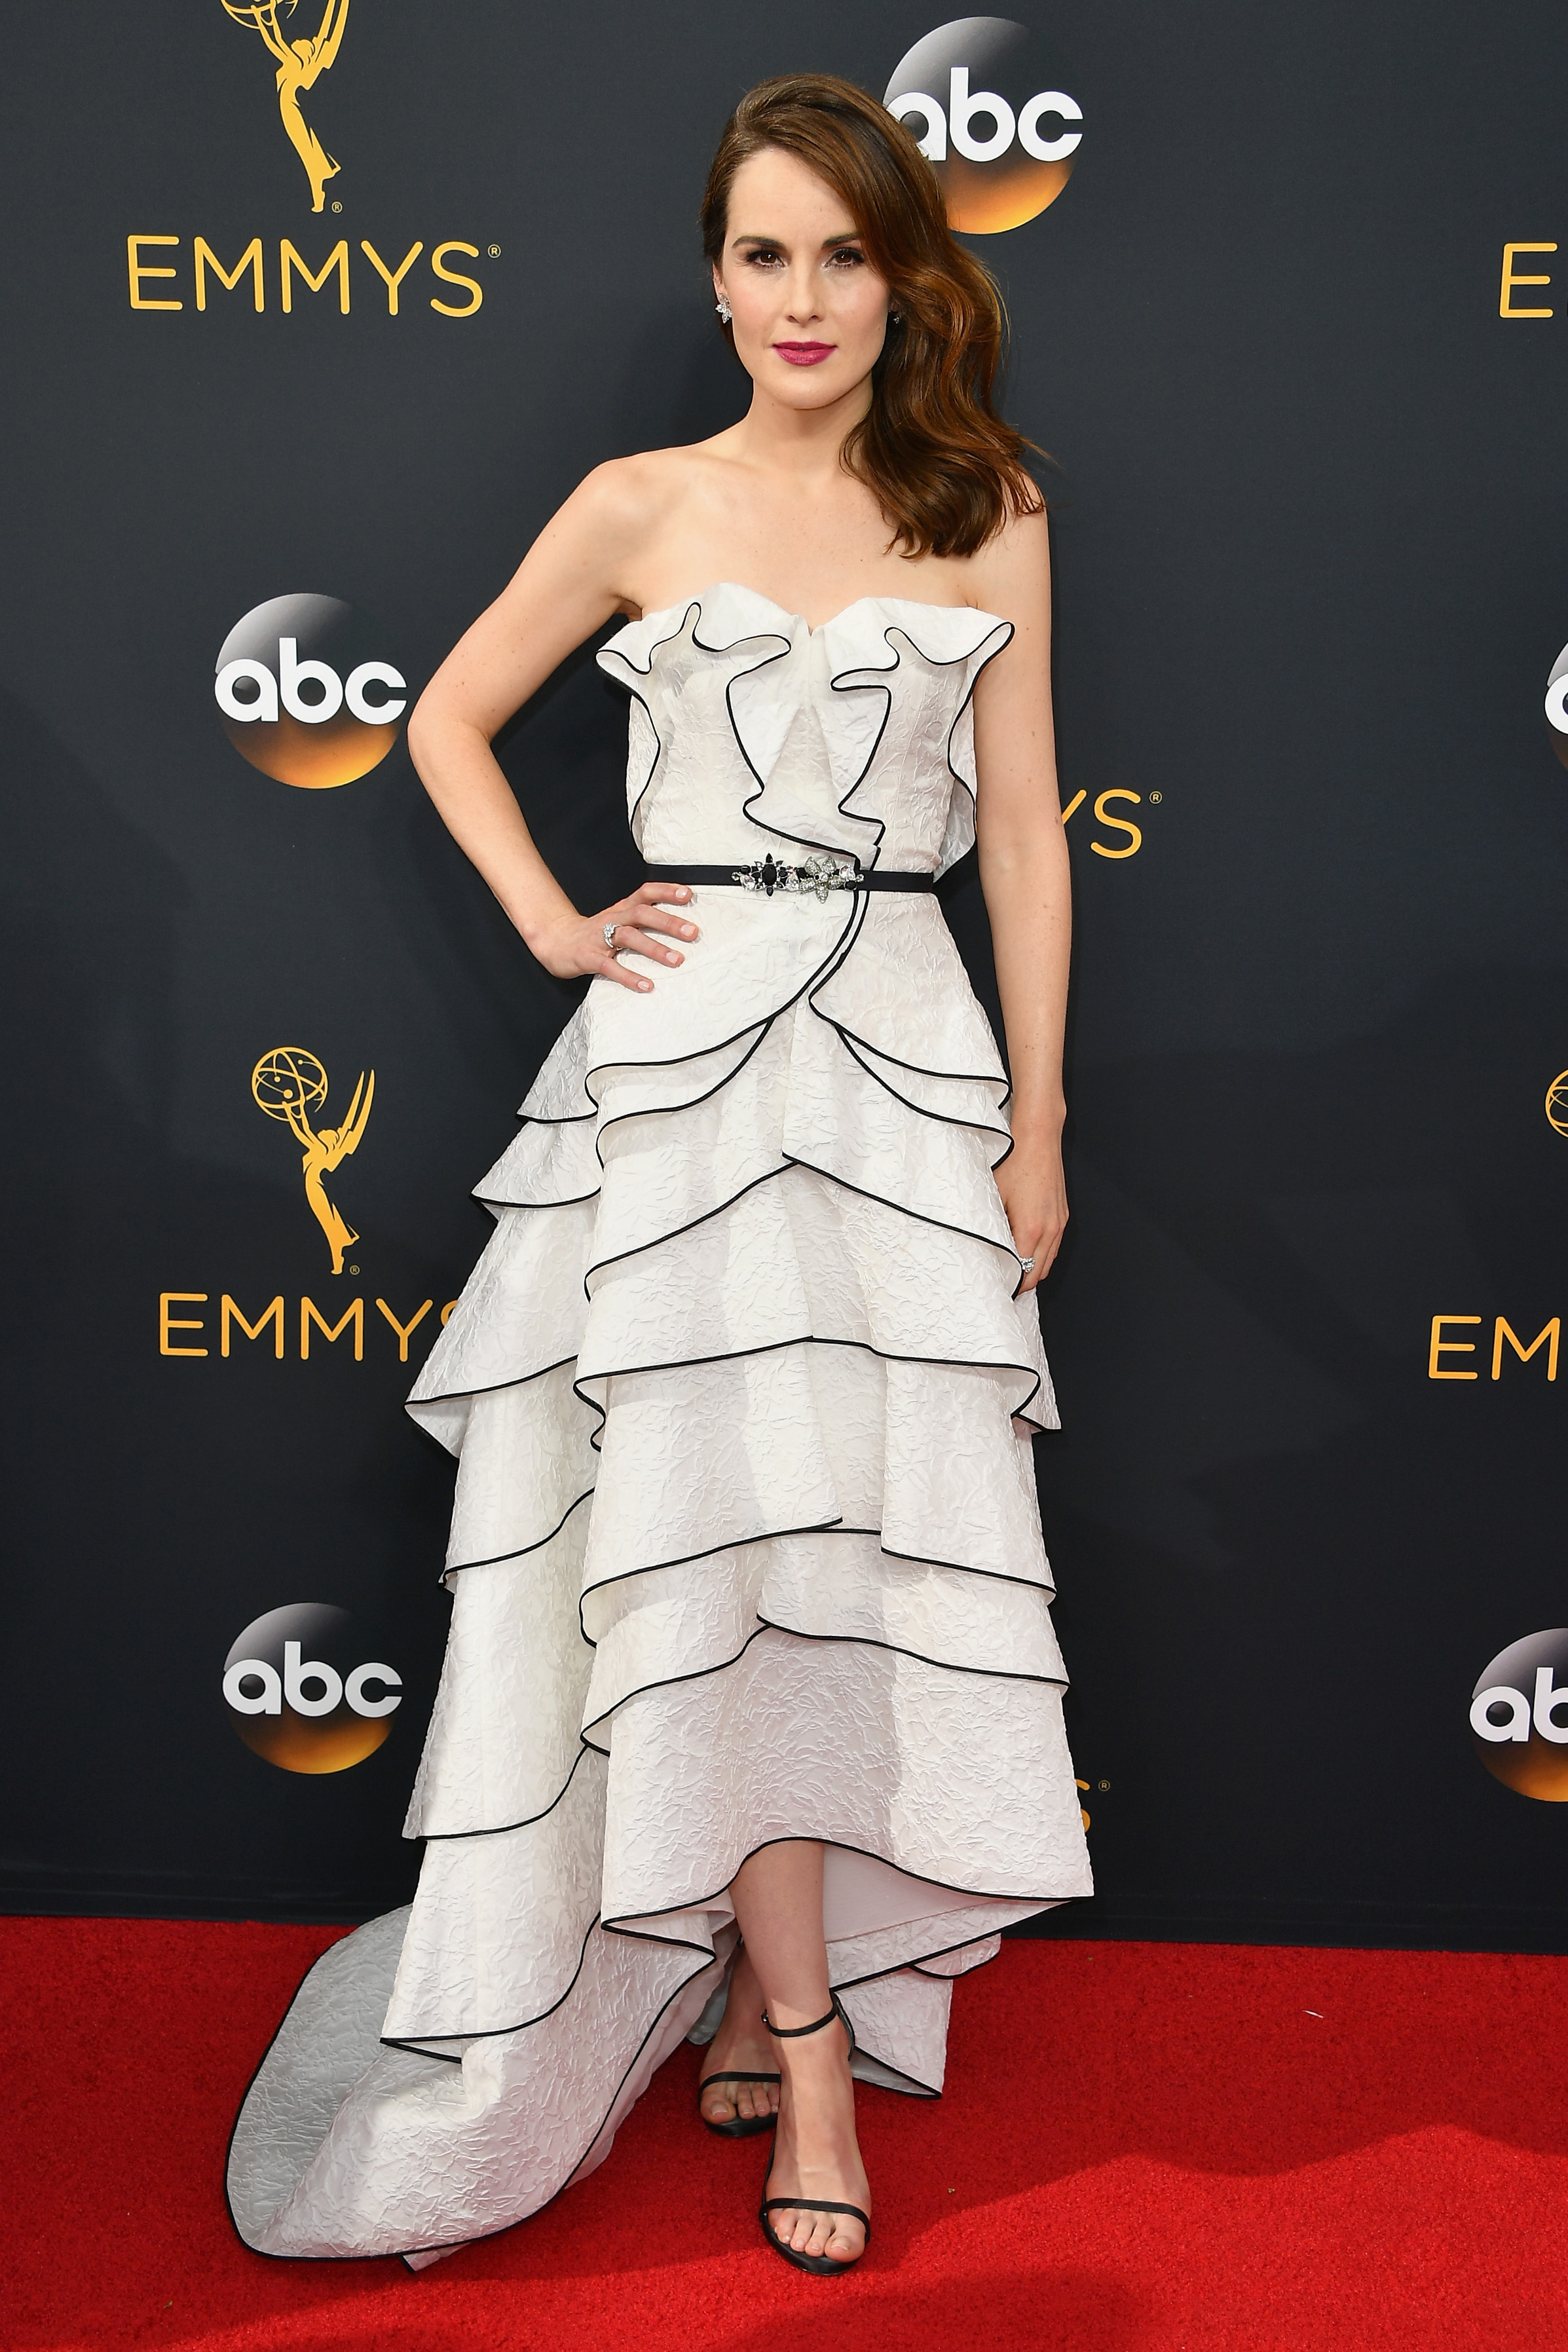 Michelle Dockery arrives at the 68th Annual Primetime Emmy Awards at Microsoft Theater on Sept. 18, 2016 in Los Angeles.